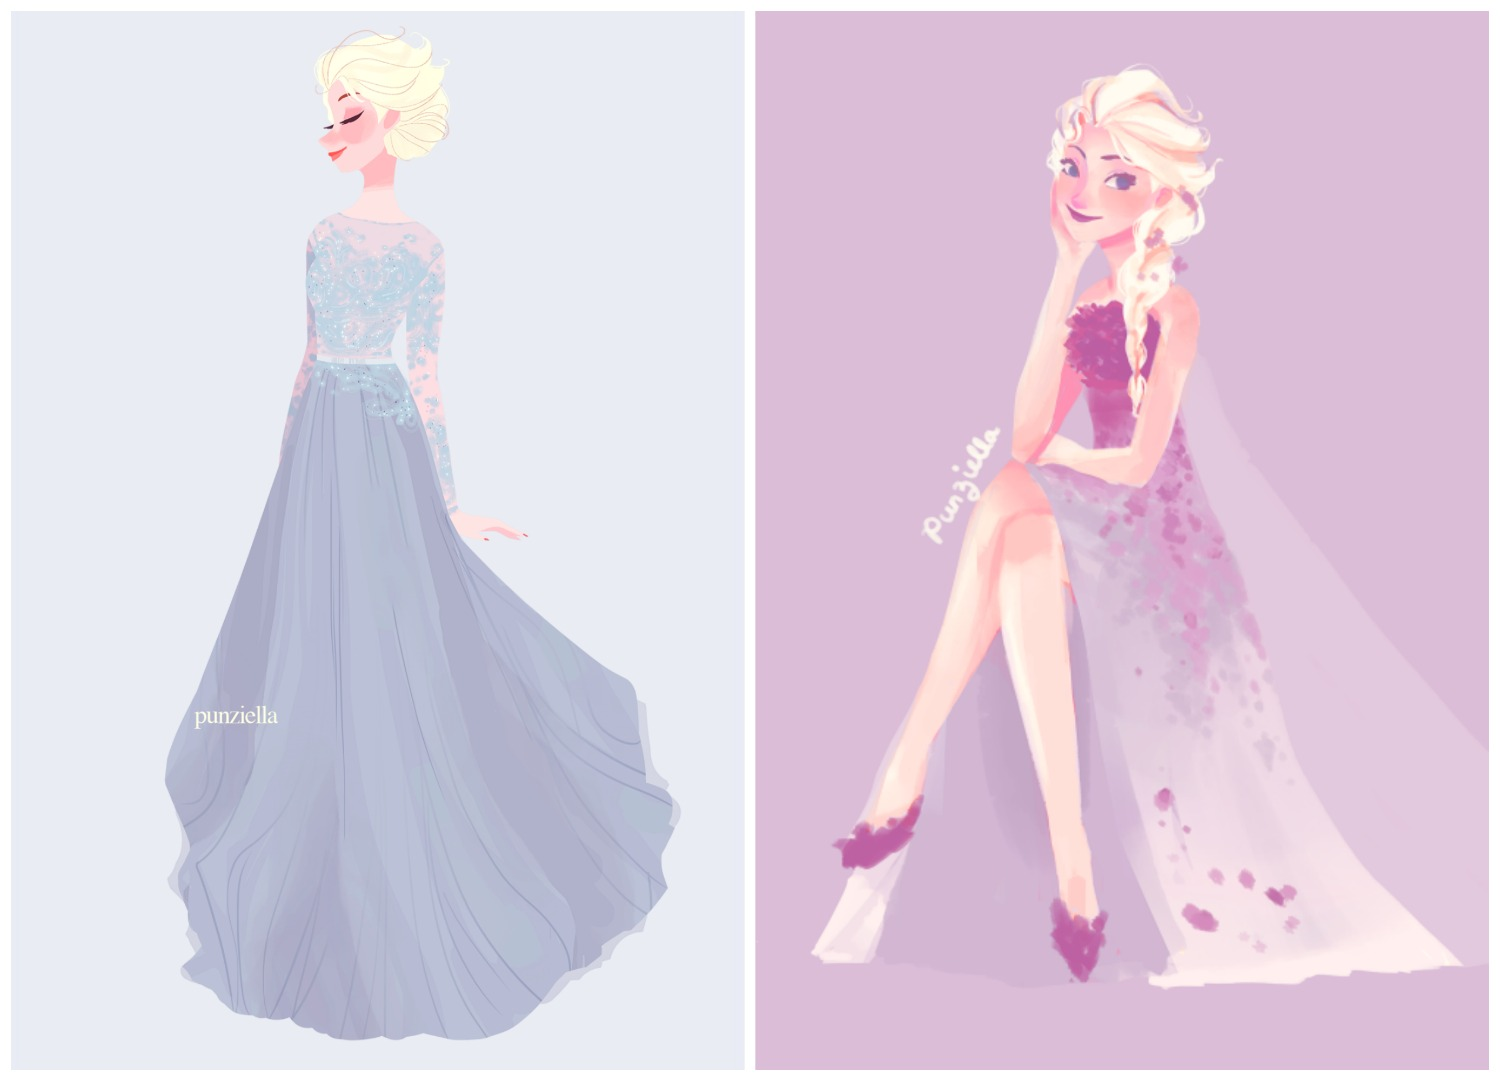 Elsa - Frozen Illustration - Punziella